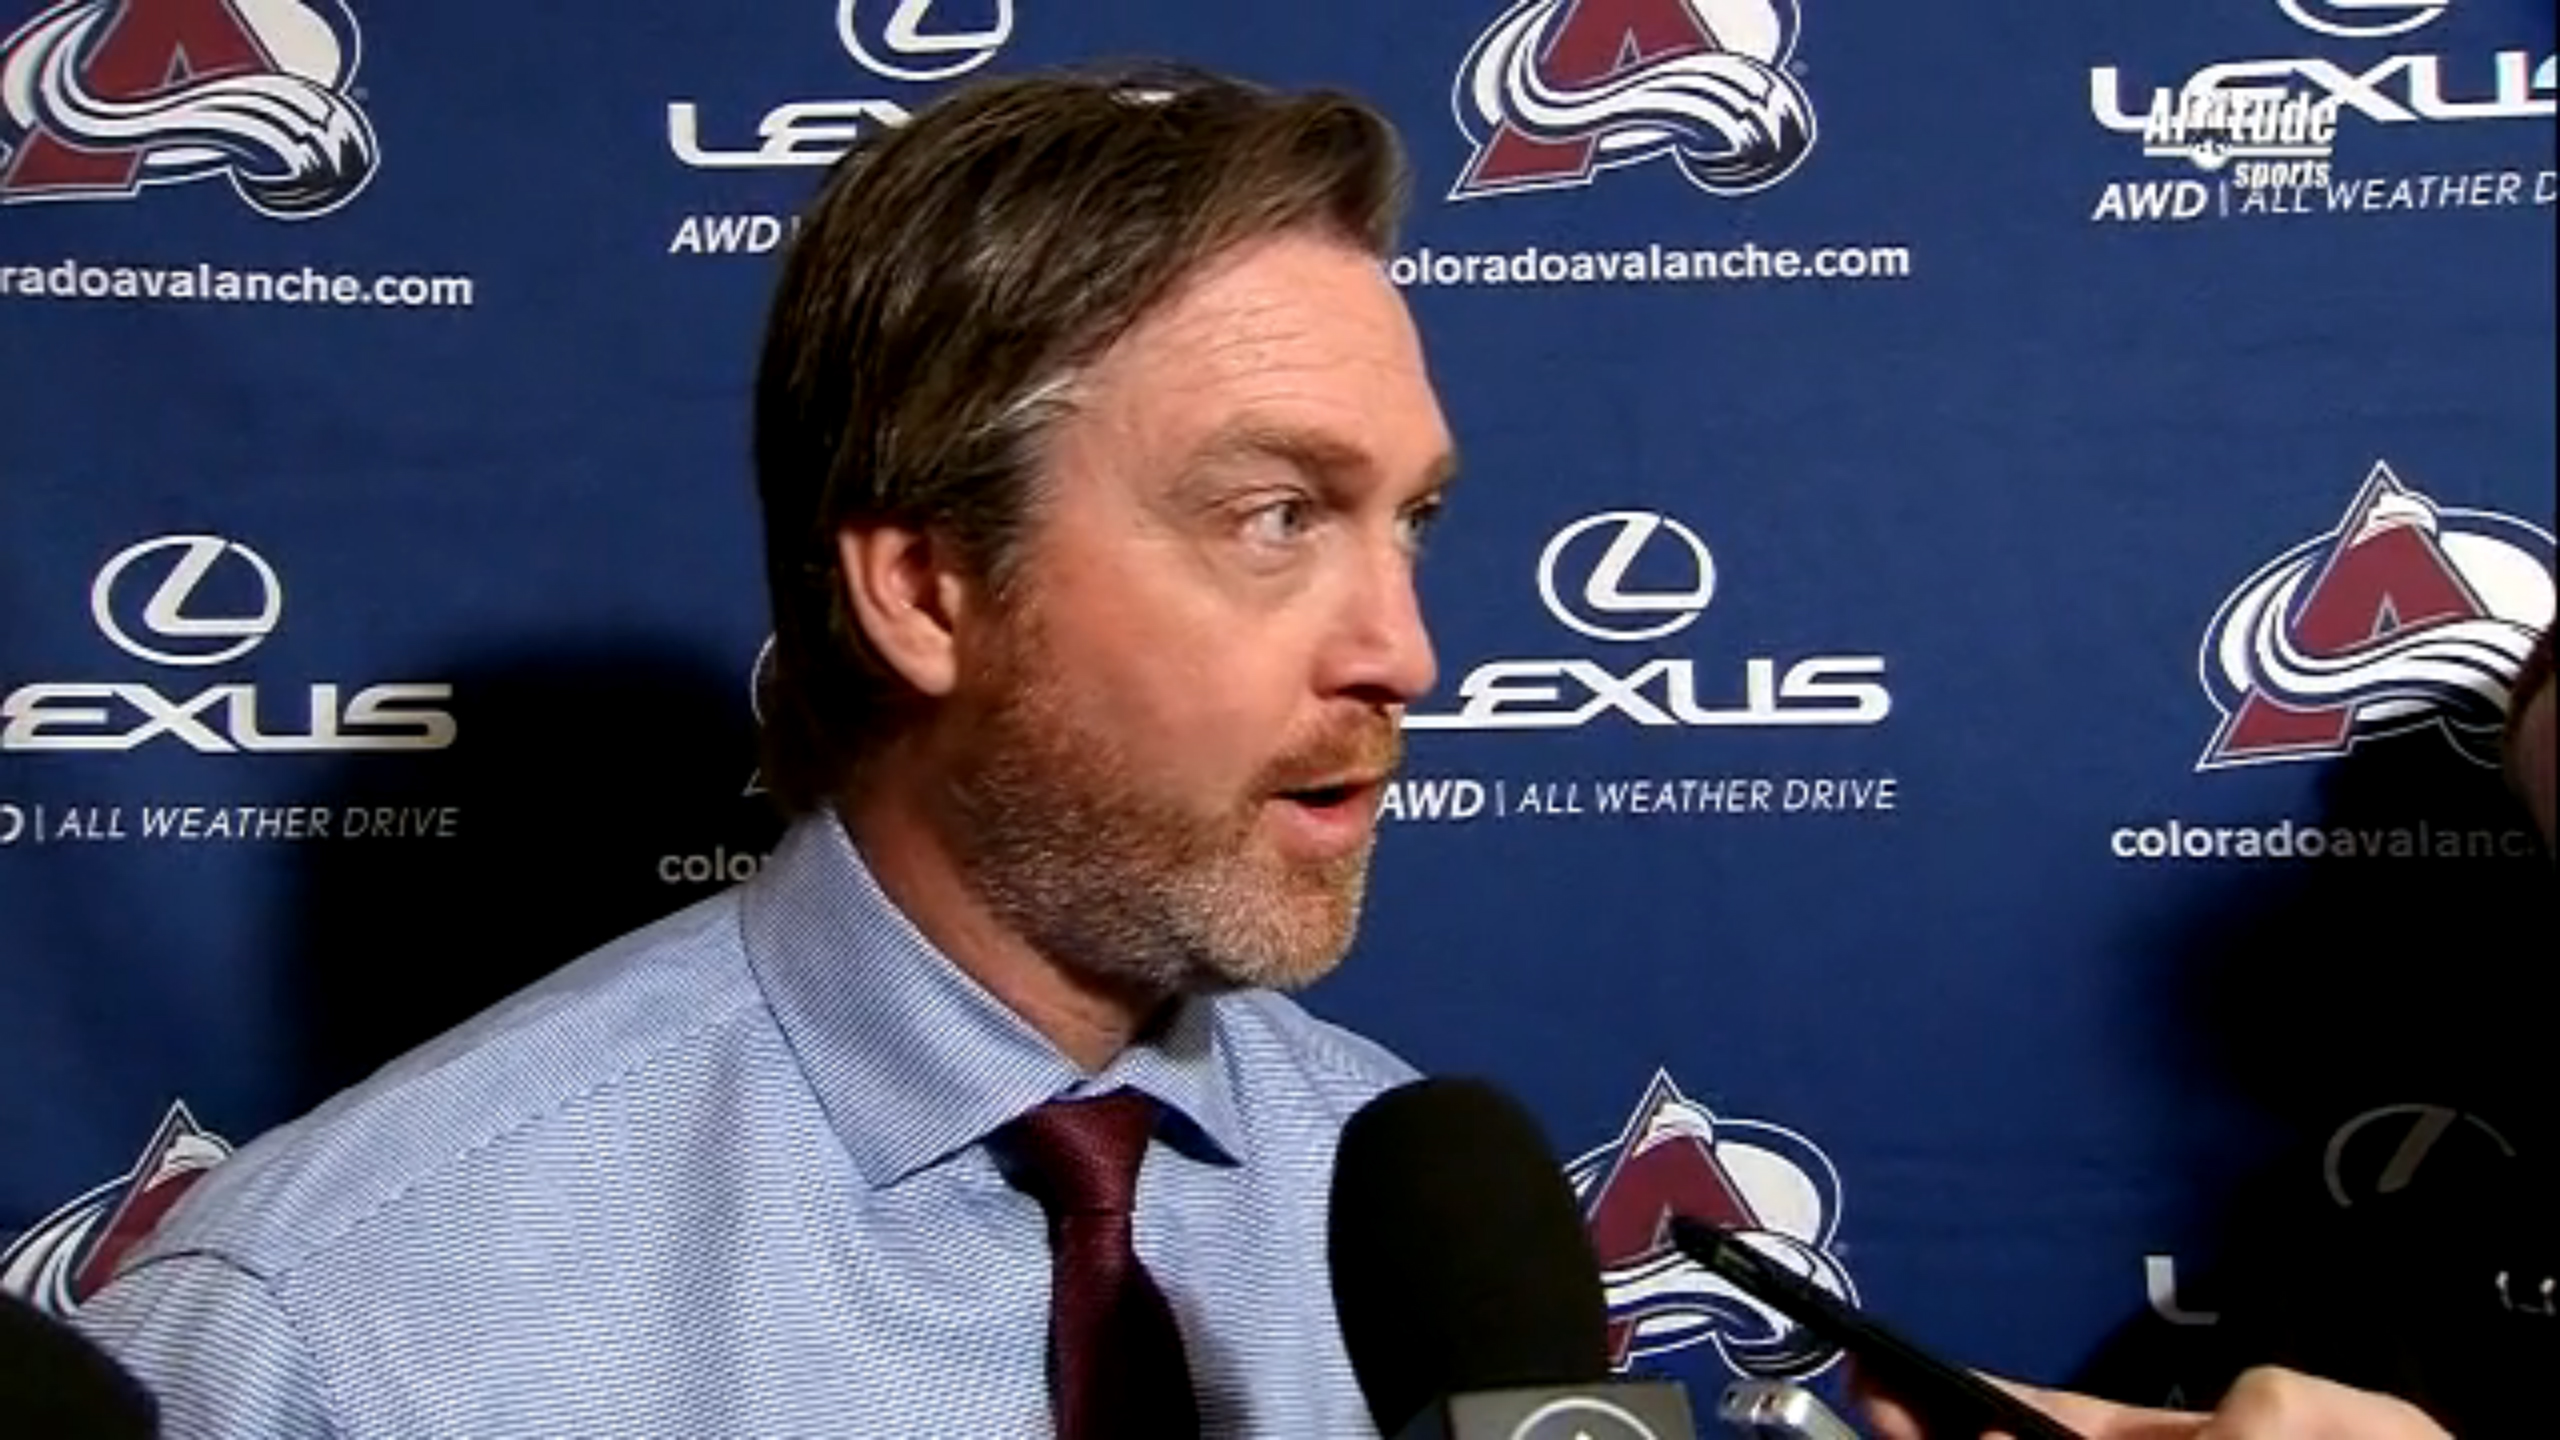 Patrick-Roy-Post-Game-11-10-15.jpg